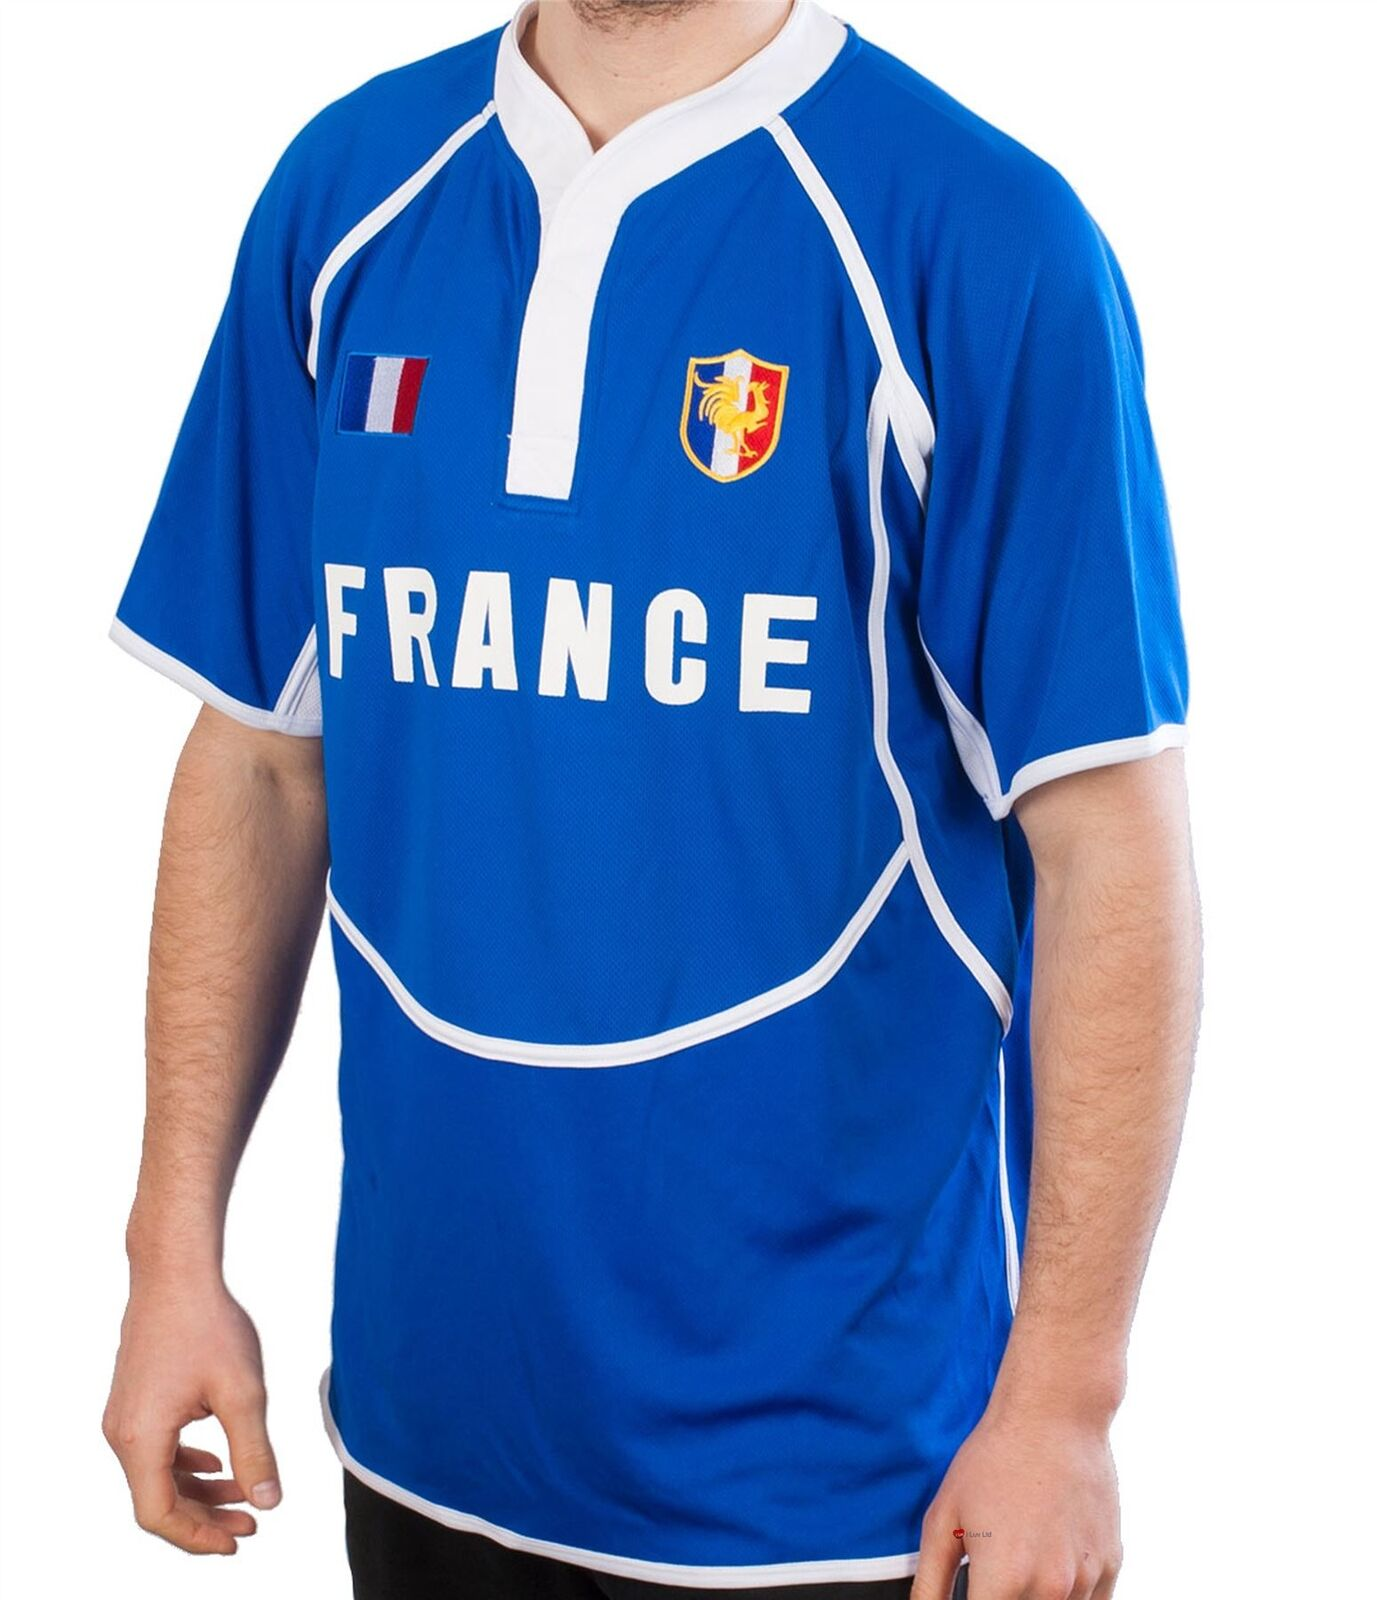 Gents Cooldry Style Rugby Shirt In France Colours Größe 2X-Large